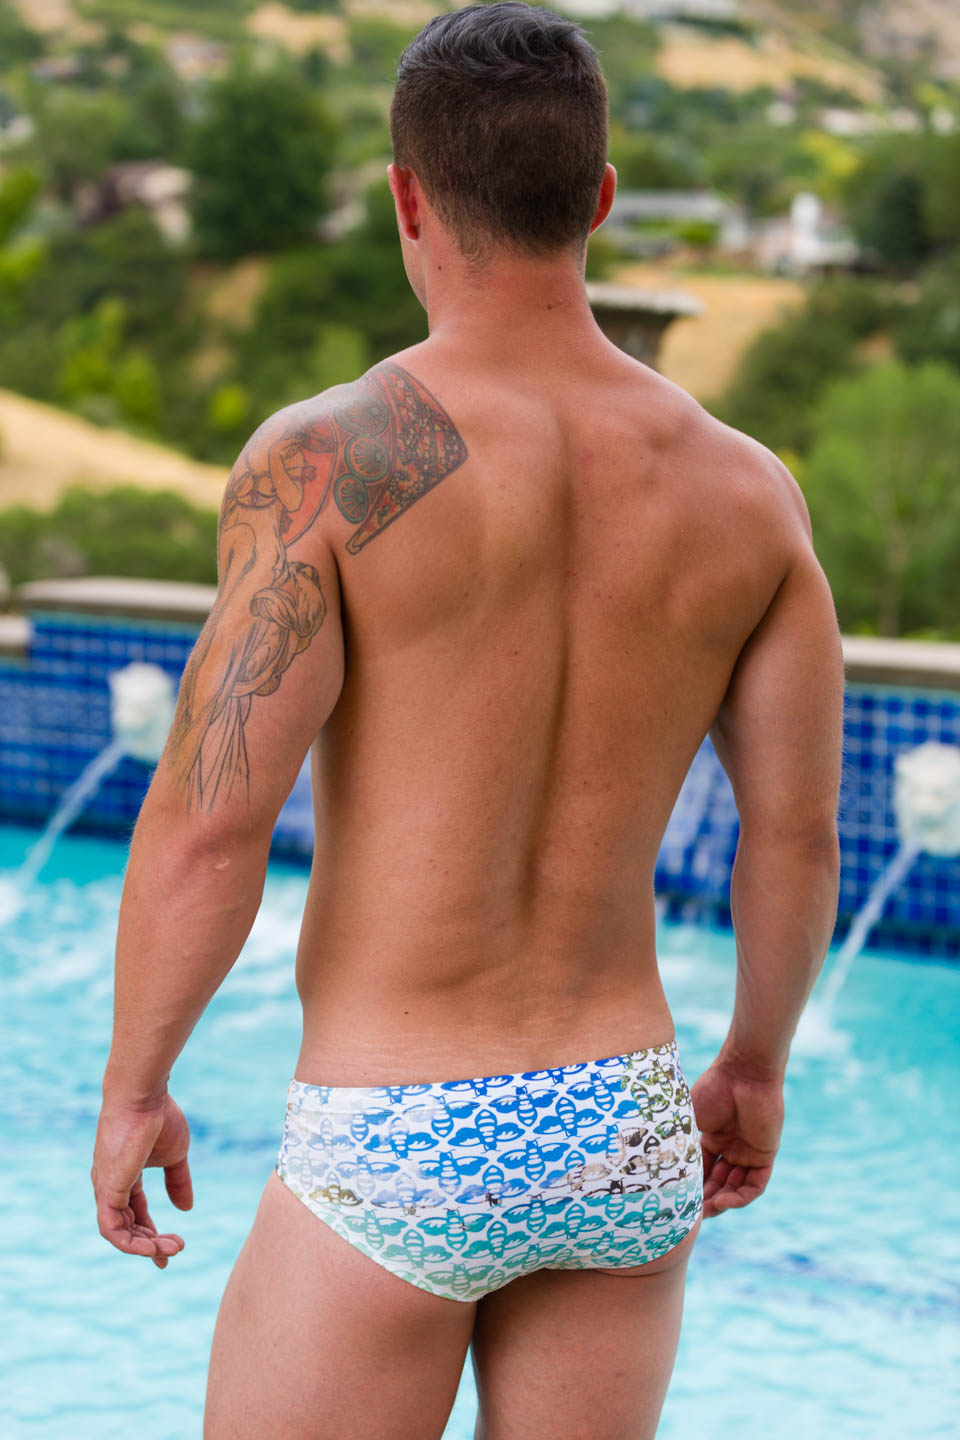 Luke models Aronik Hawaiian Mission swimwear